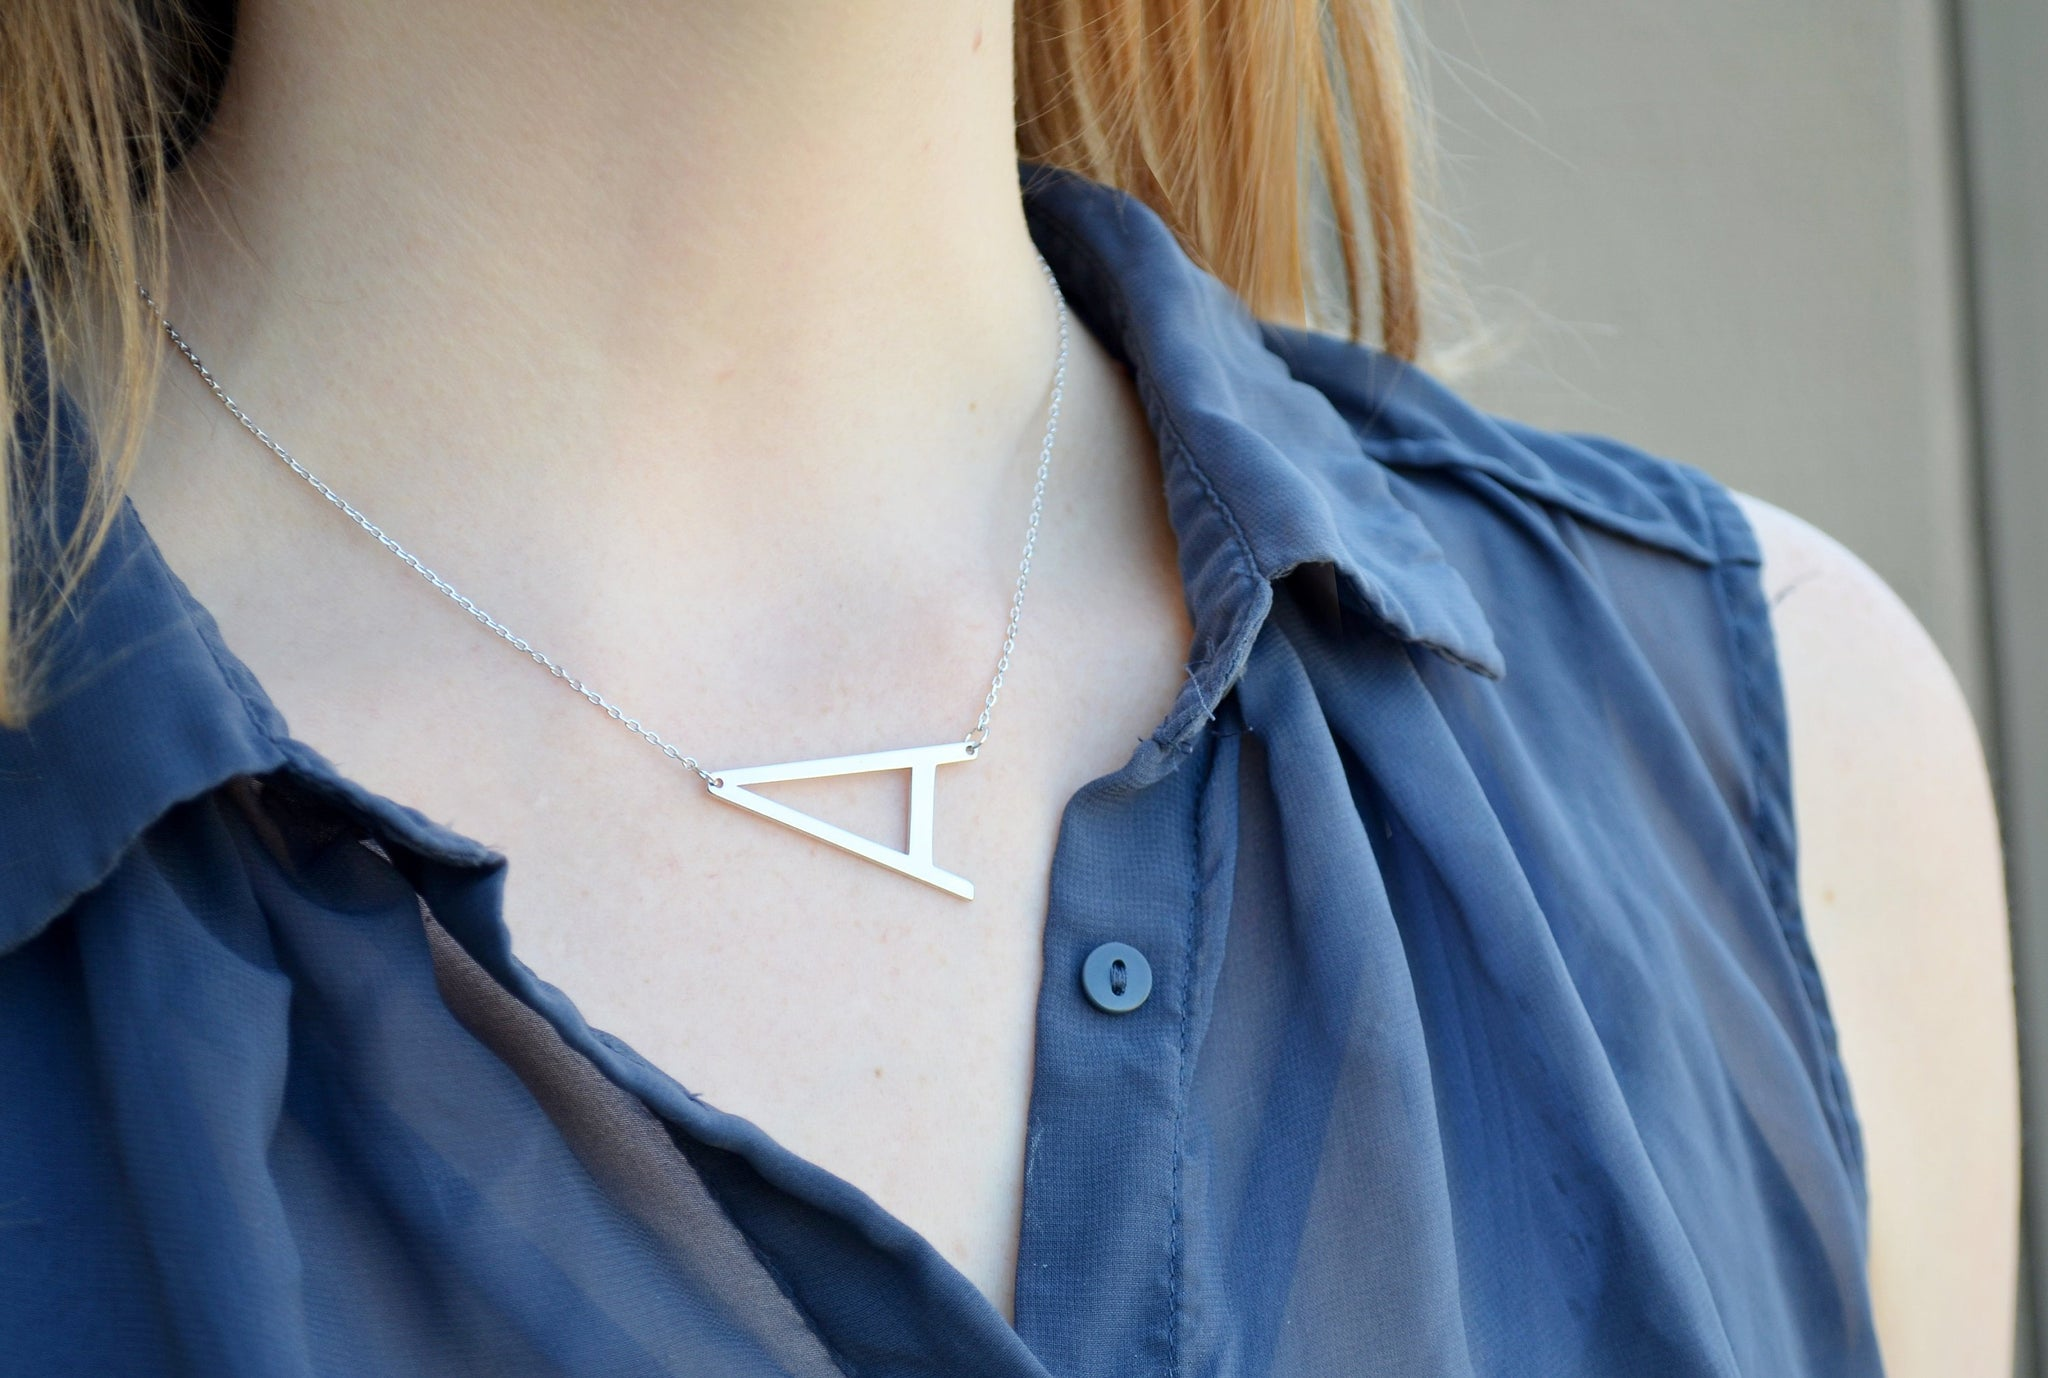 Large Initial Necklace Personalized Sideway Letter Necklace Name Initial Necklace Birthday Gifts for Her